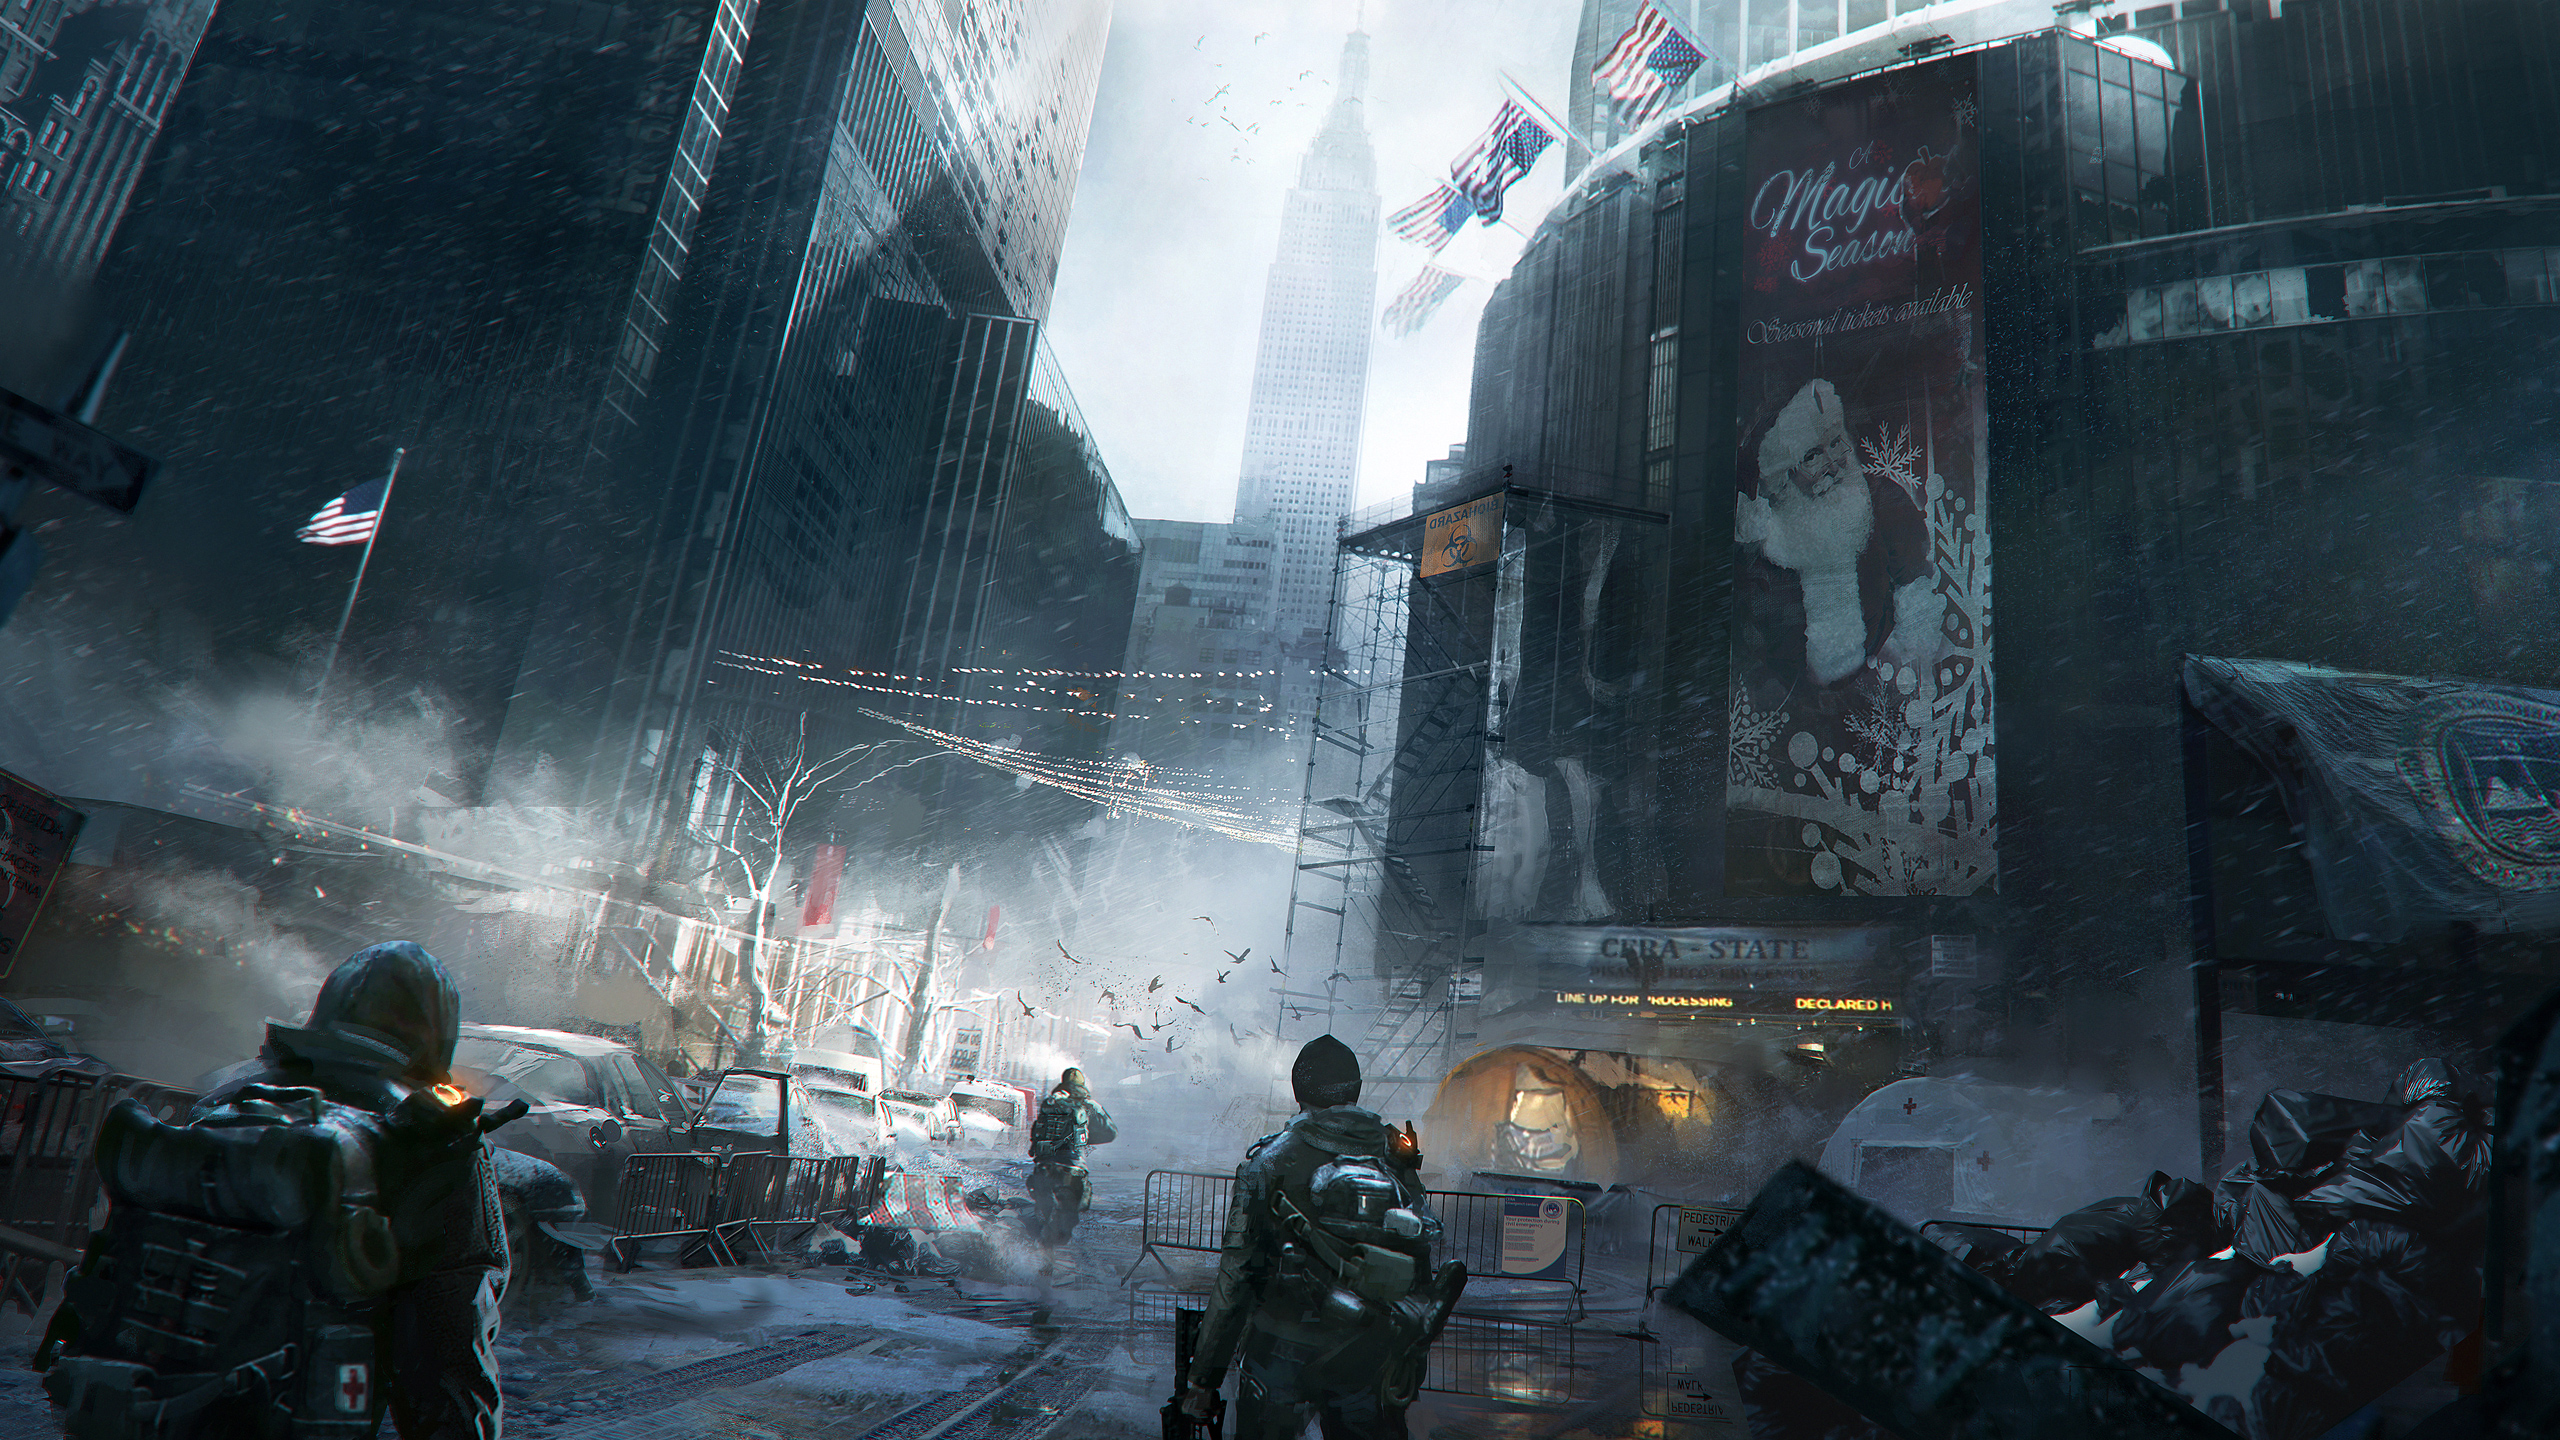 Amazing Tom Clancys The Division Wallpaper Full HD Pictures 2560x1440